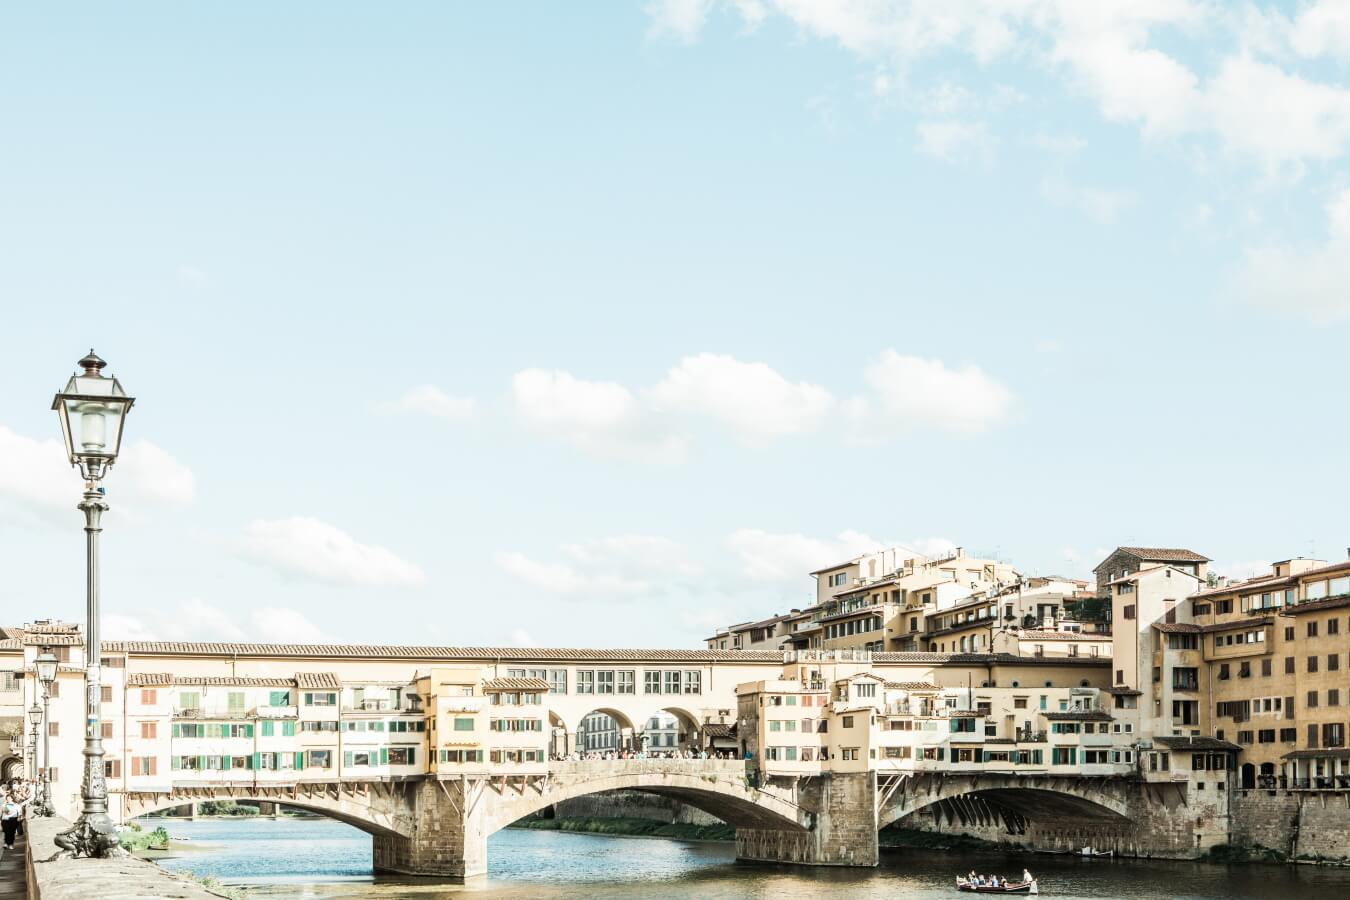 Ponte Vecchio, the icon of Florence, for a beautiful destination wedding in Florence